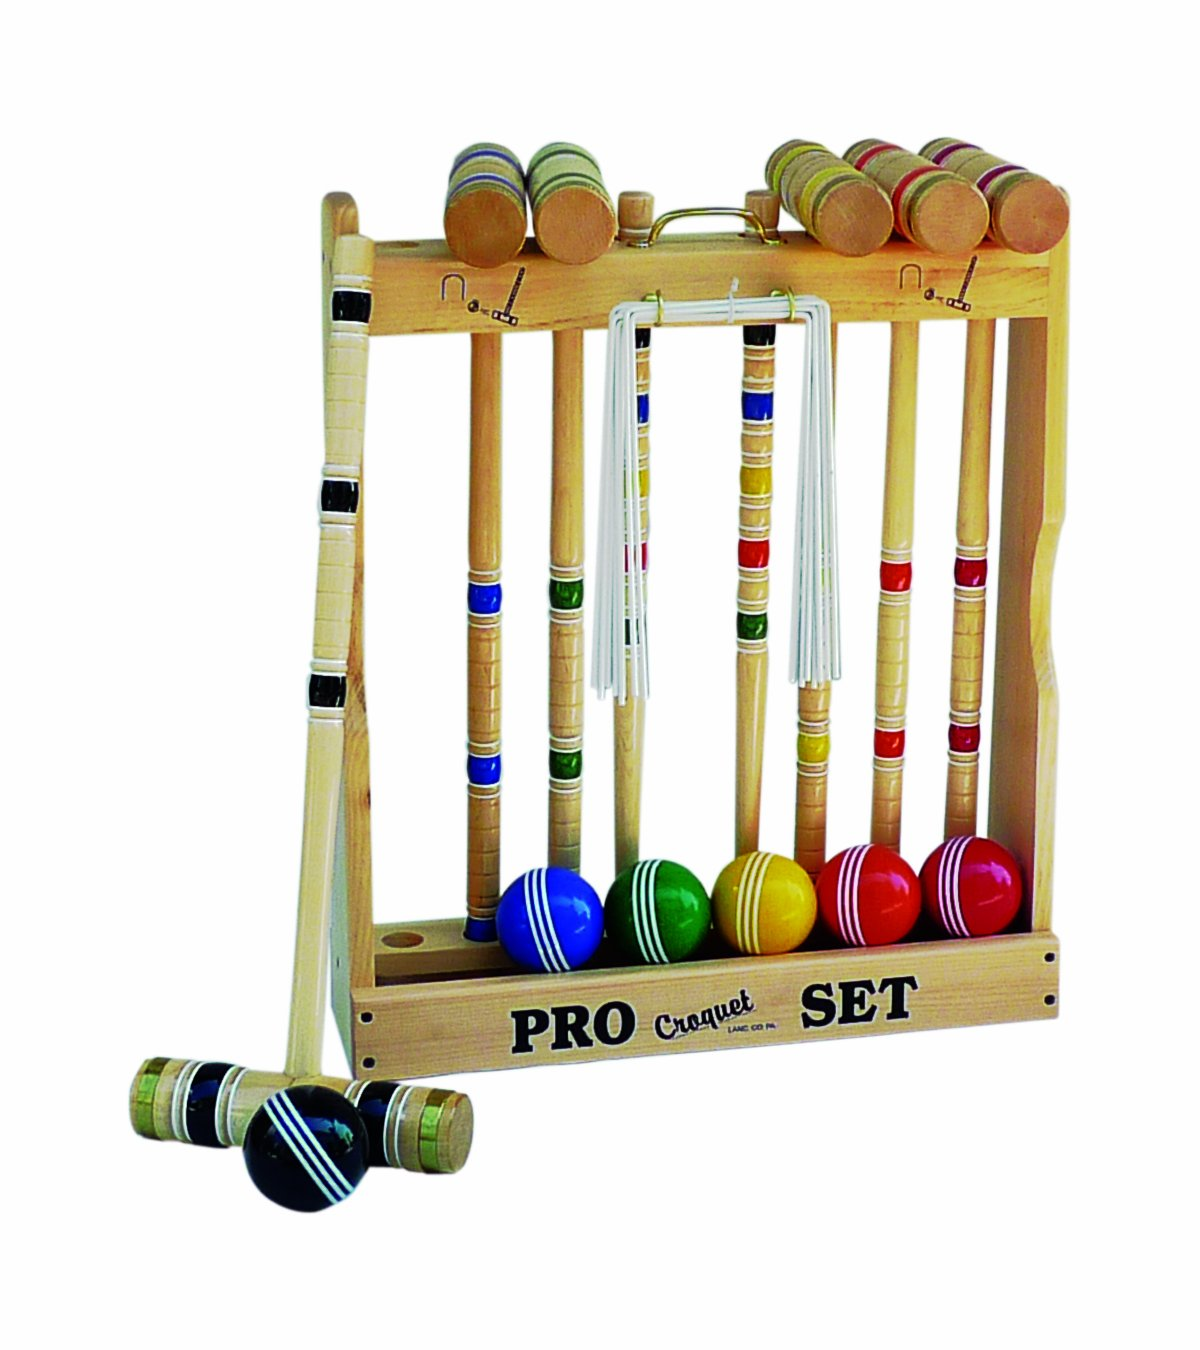 Amish-Crafted Deluxe Maple-Wood Croquet Game Set, 6 Player Set (32'' Handles)